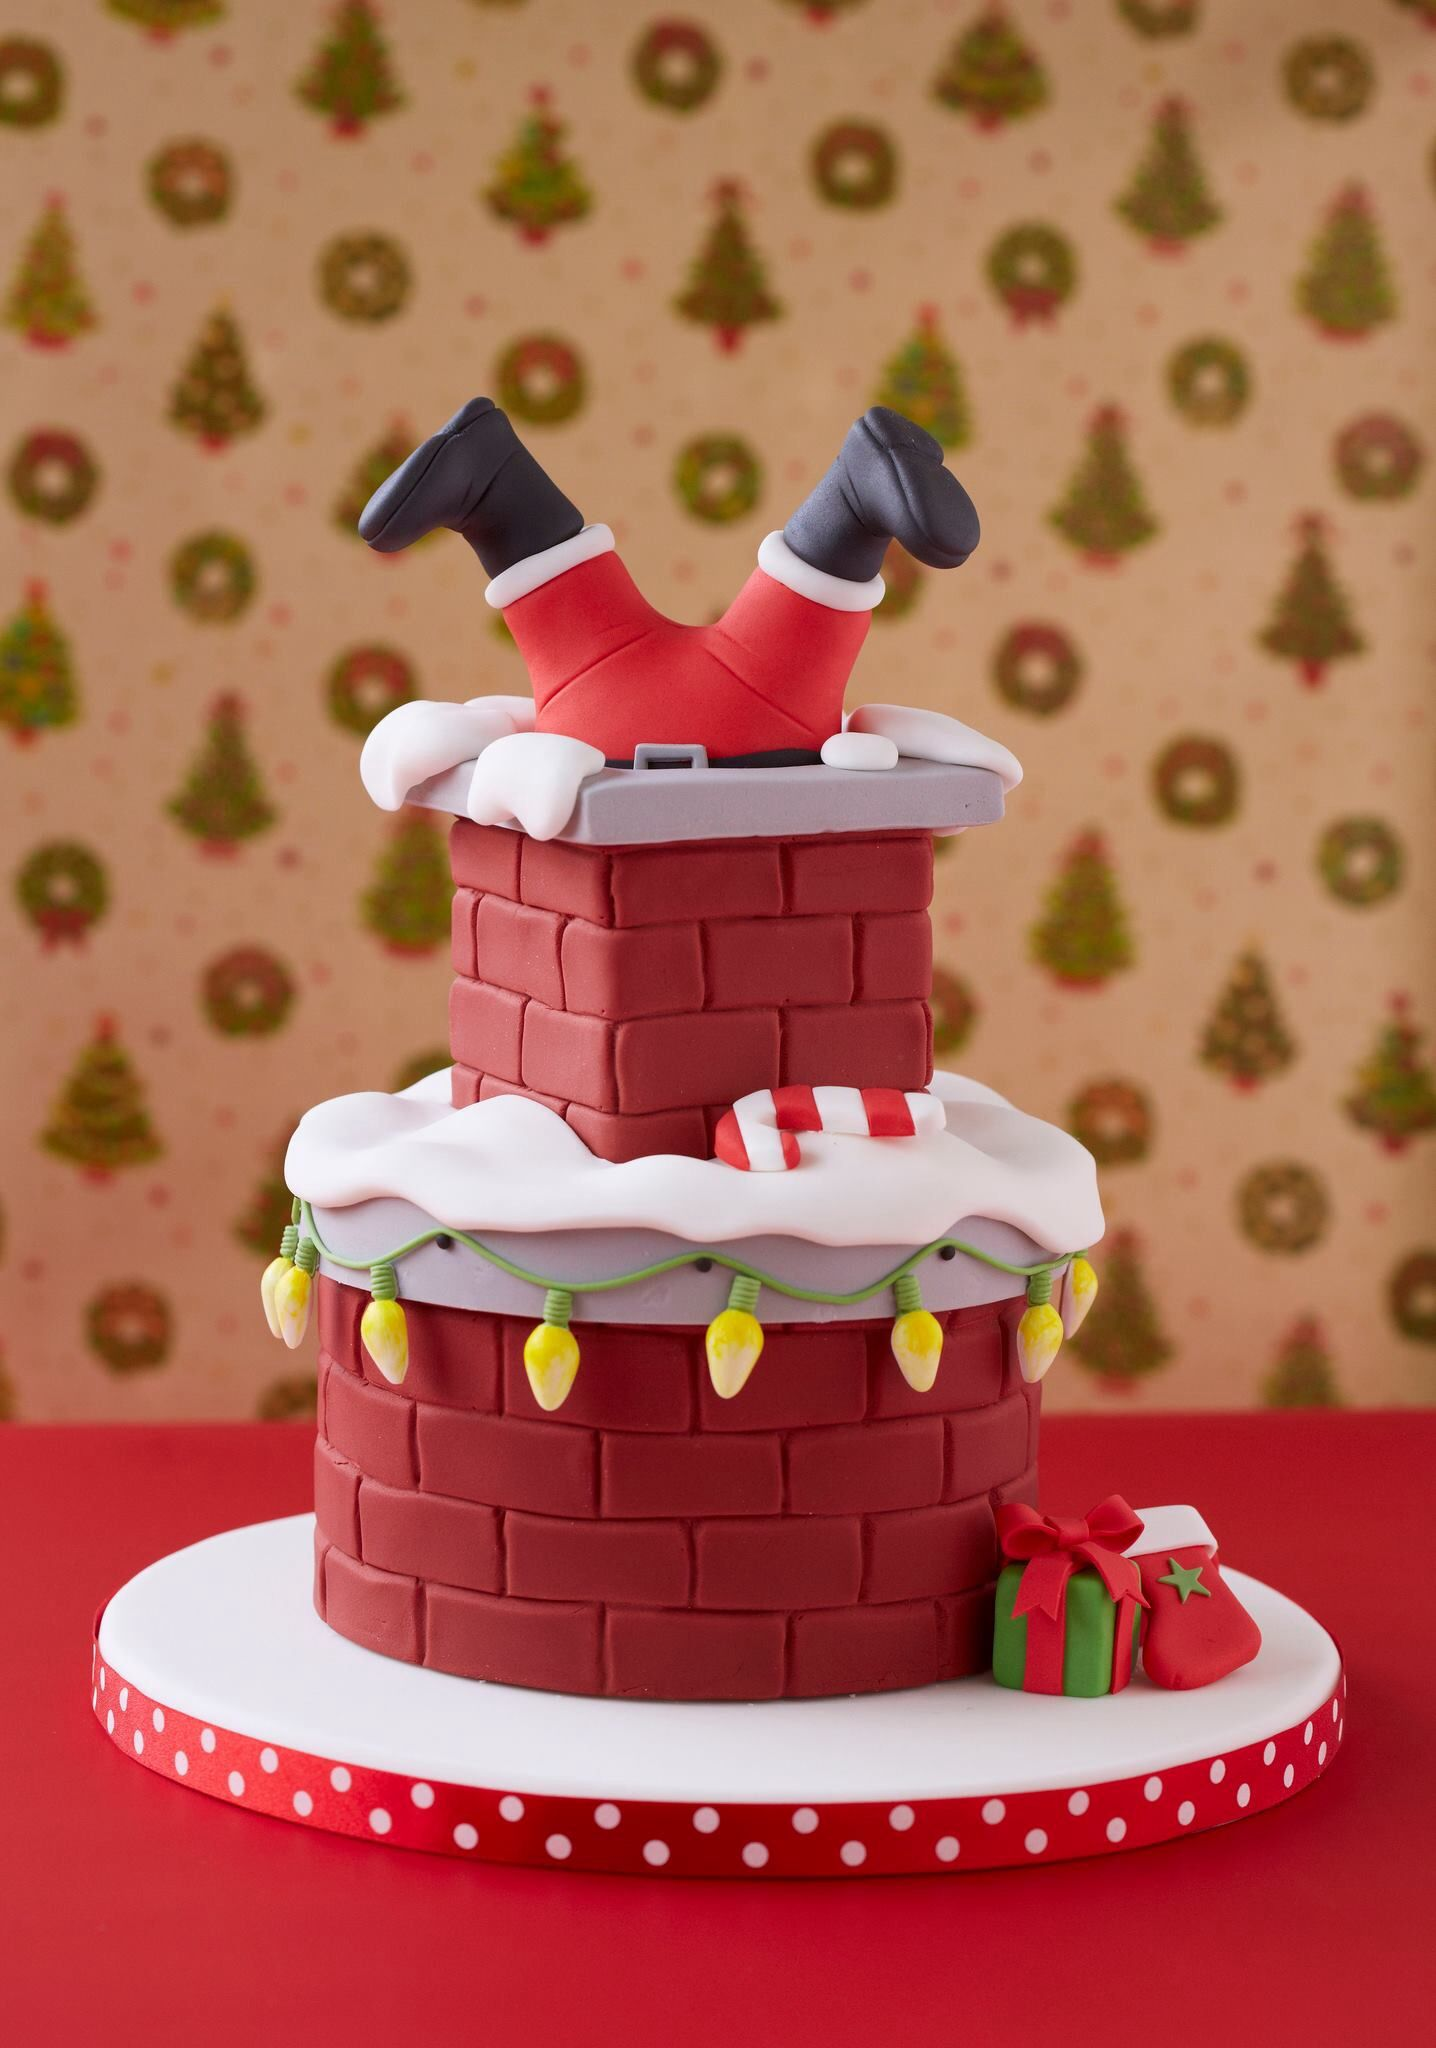 Santana stuck in the chimney cake. Photo only. Christmas